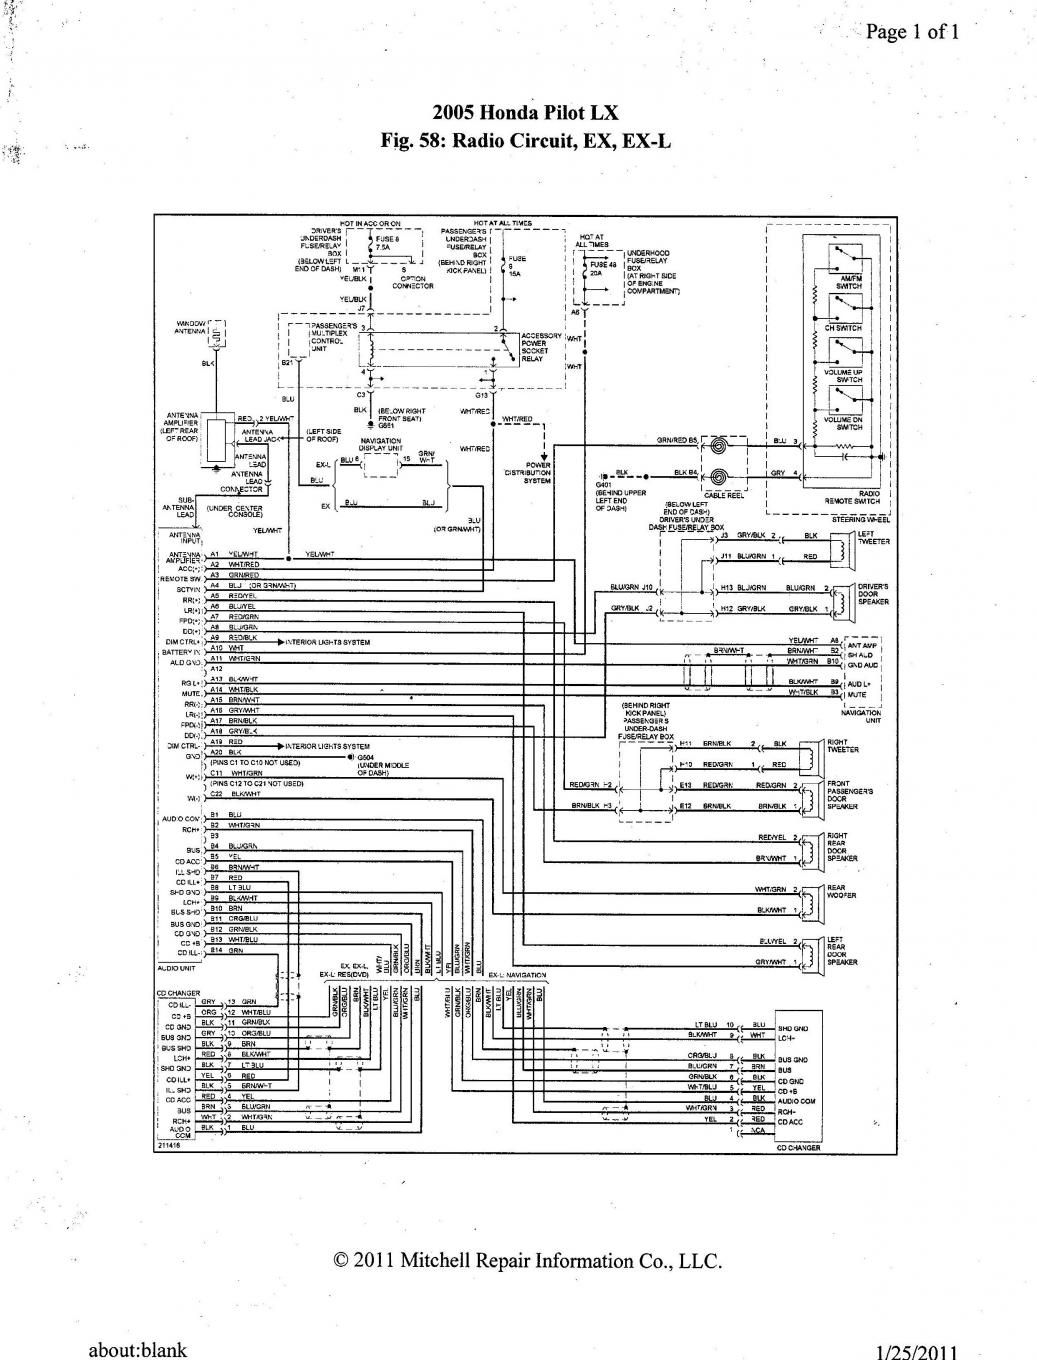 hight resolution of 2005 honda pilot ex l ex radio wiring diagram 2005 honda pilot in2005 honda pilot